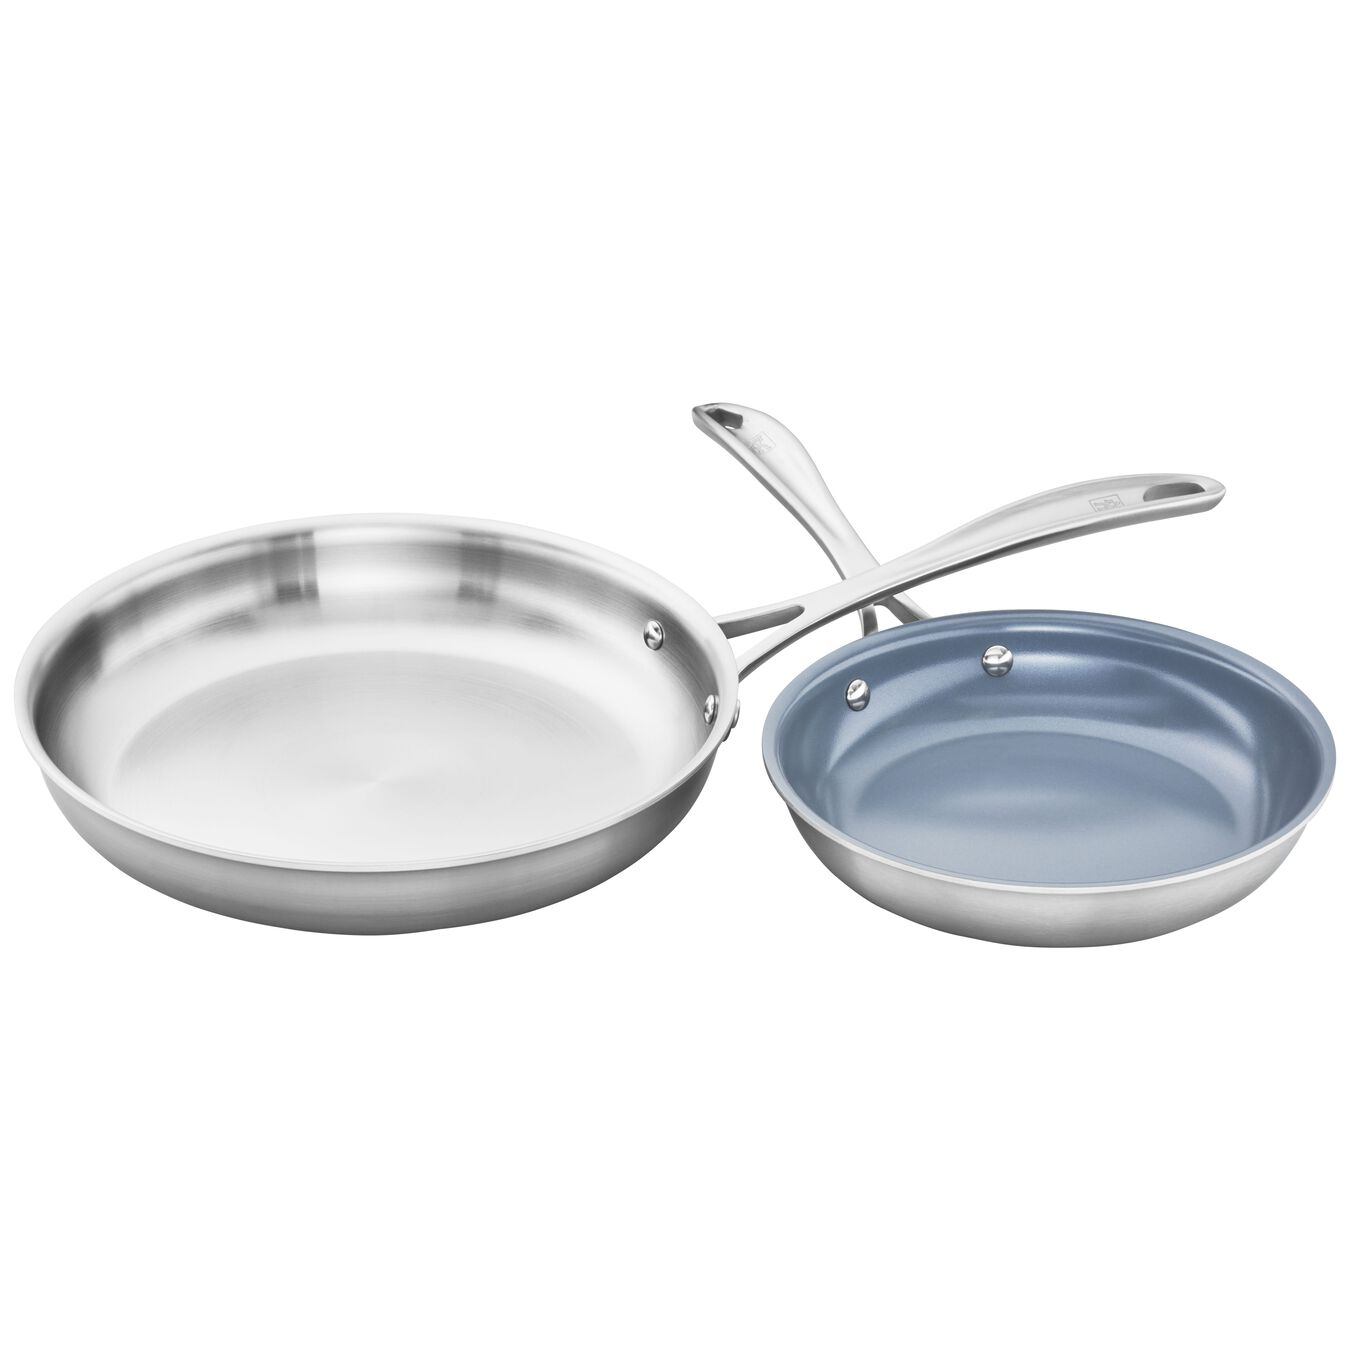 2-pc, 18/10 Stainless Steel, Non-stick, Frying pan set,,large 7